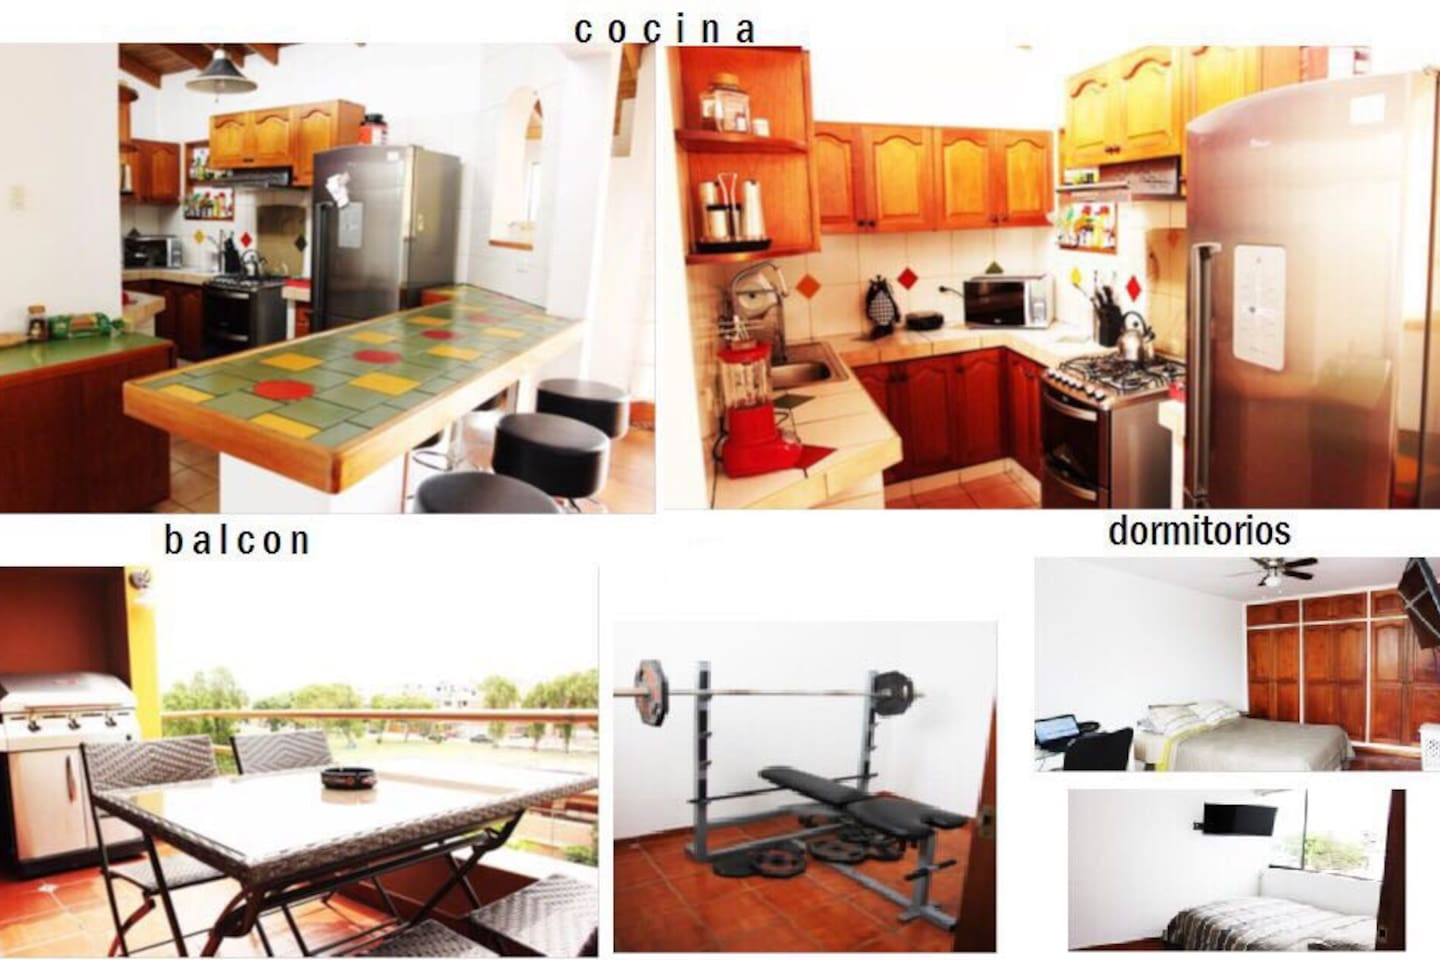 The common areas and room.